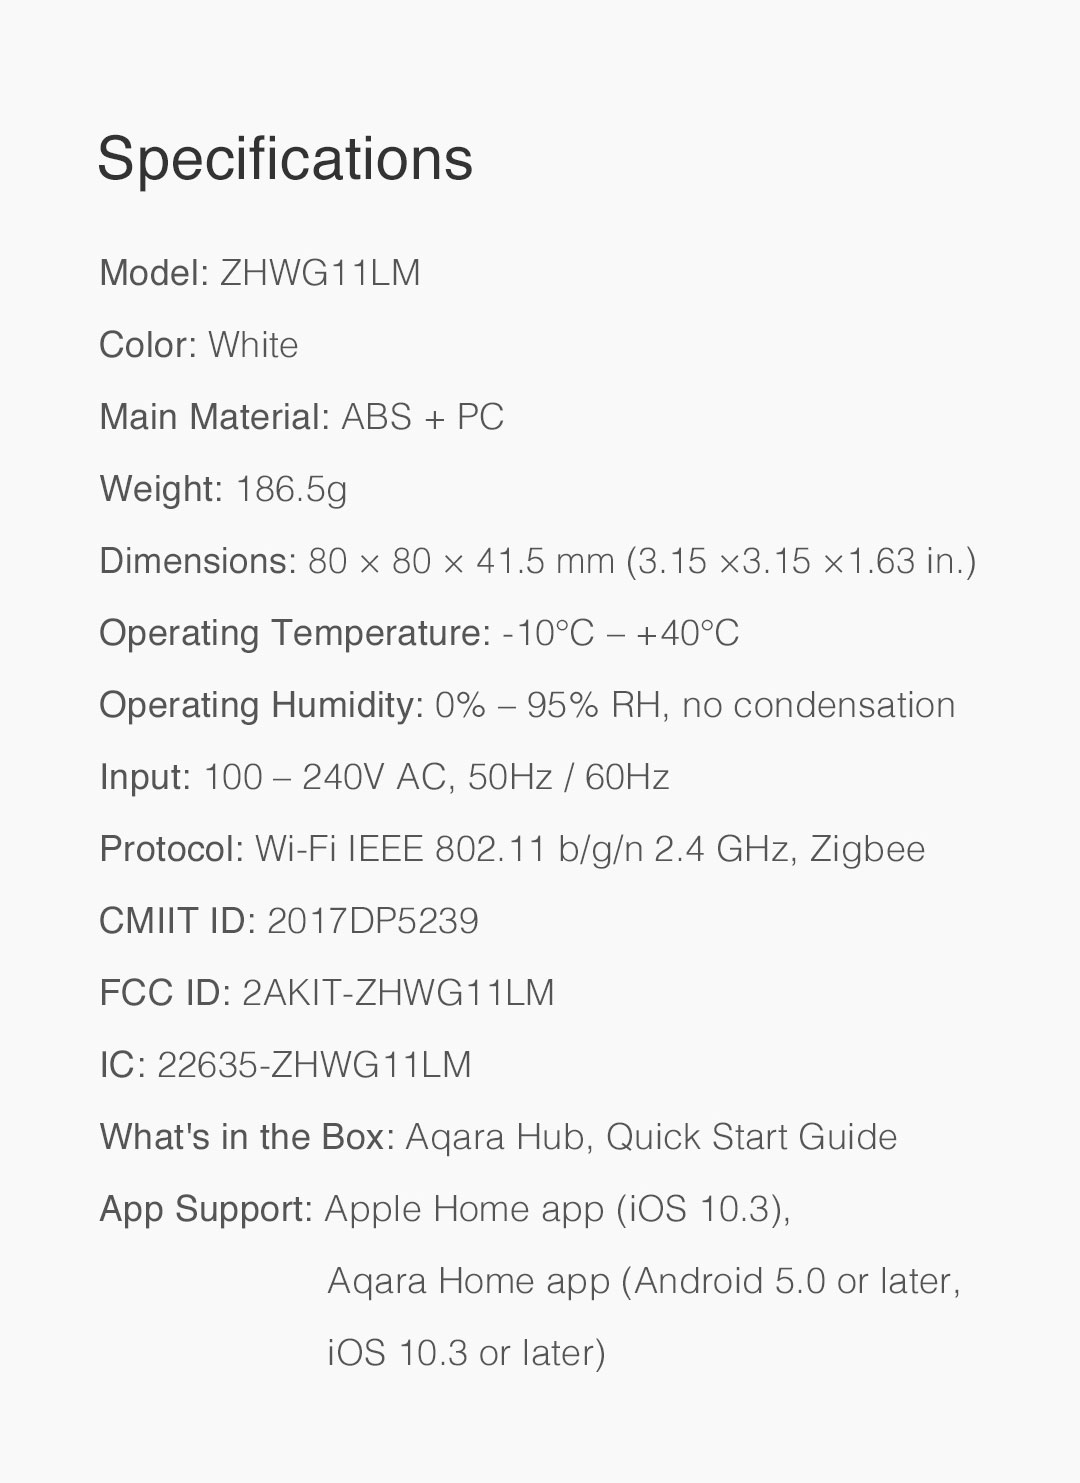 Aqara hub us version specifications